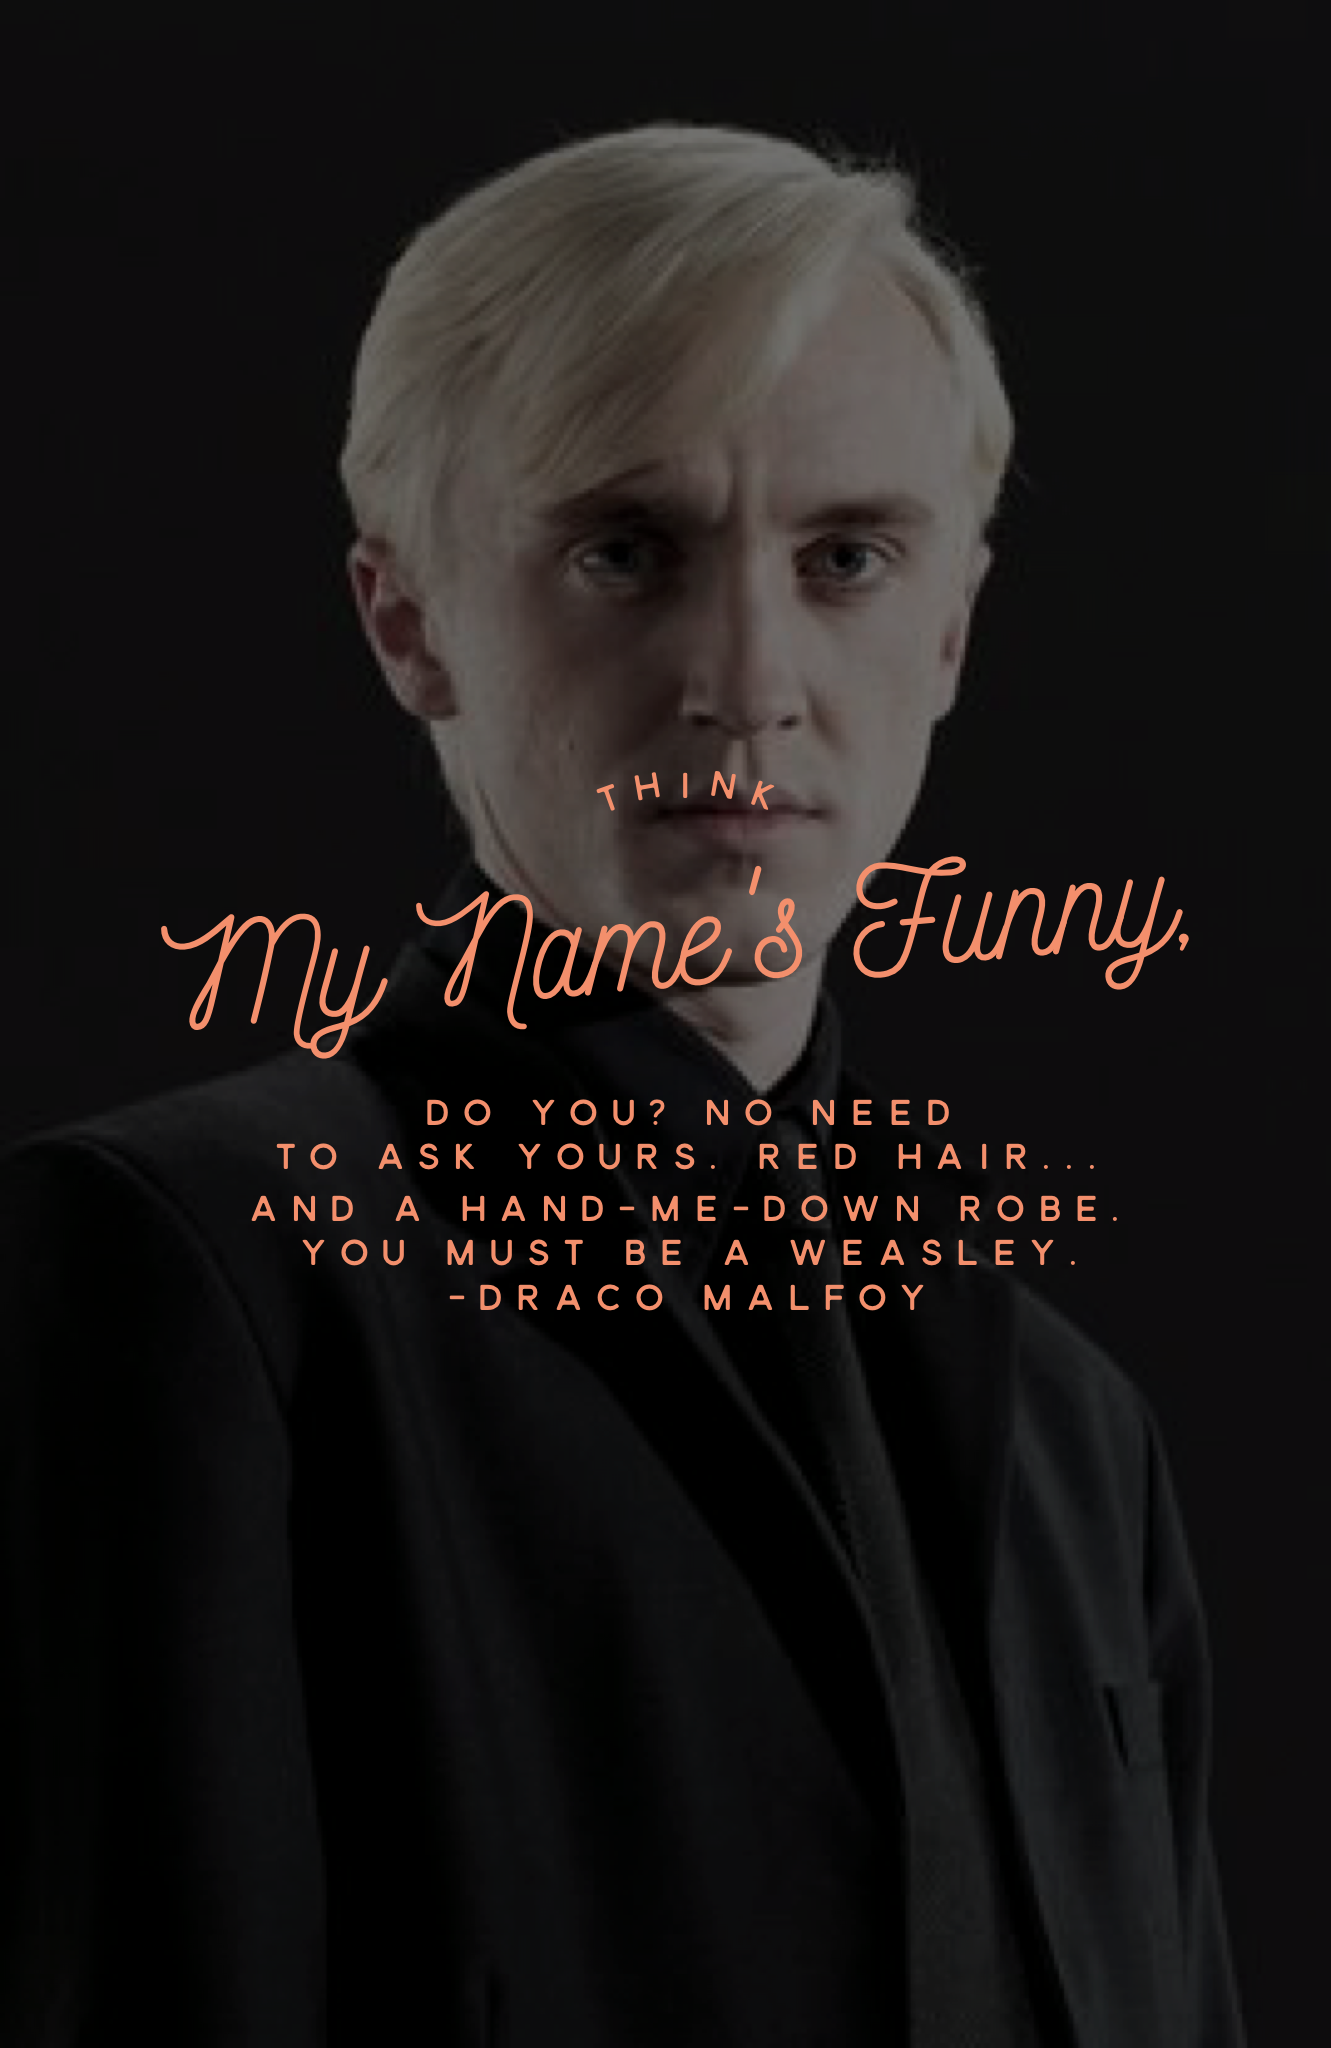 Harry Potter Character Quote Draco Malfoy Draco Malfoy Character Quotes Harry Potter Quotes Funny